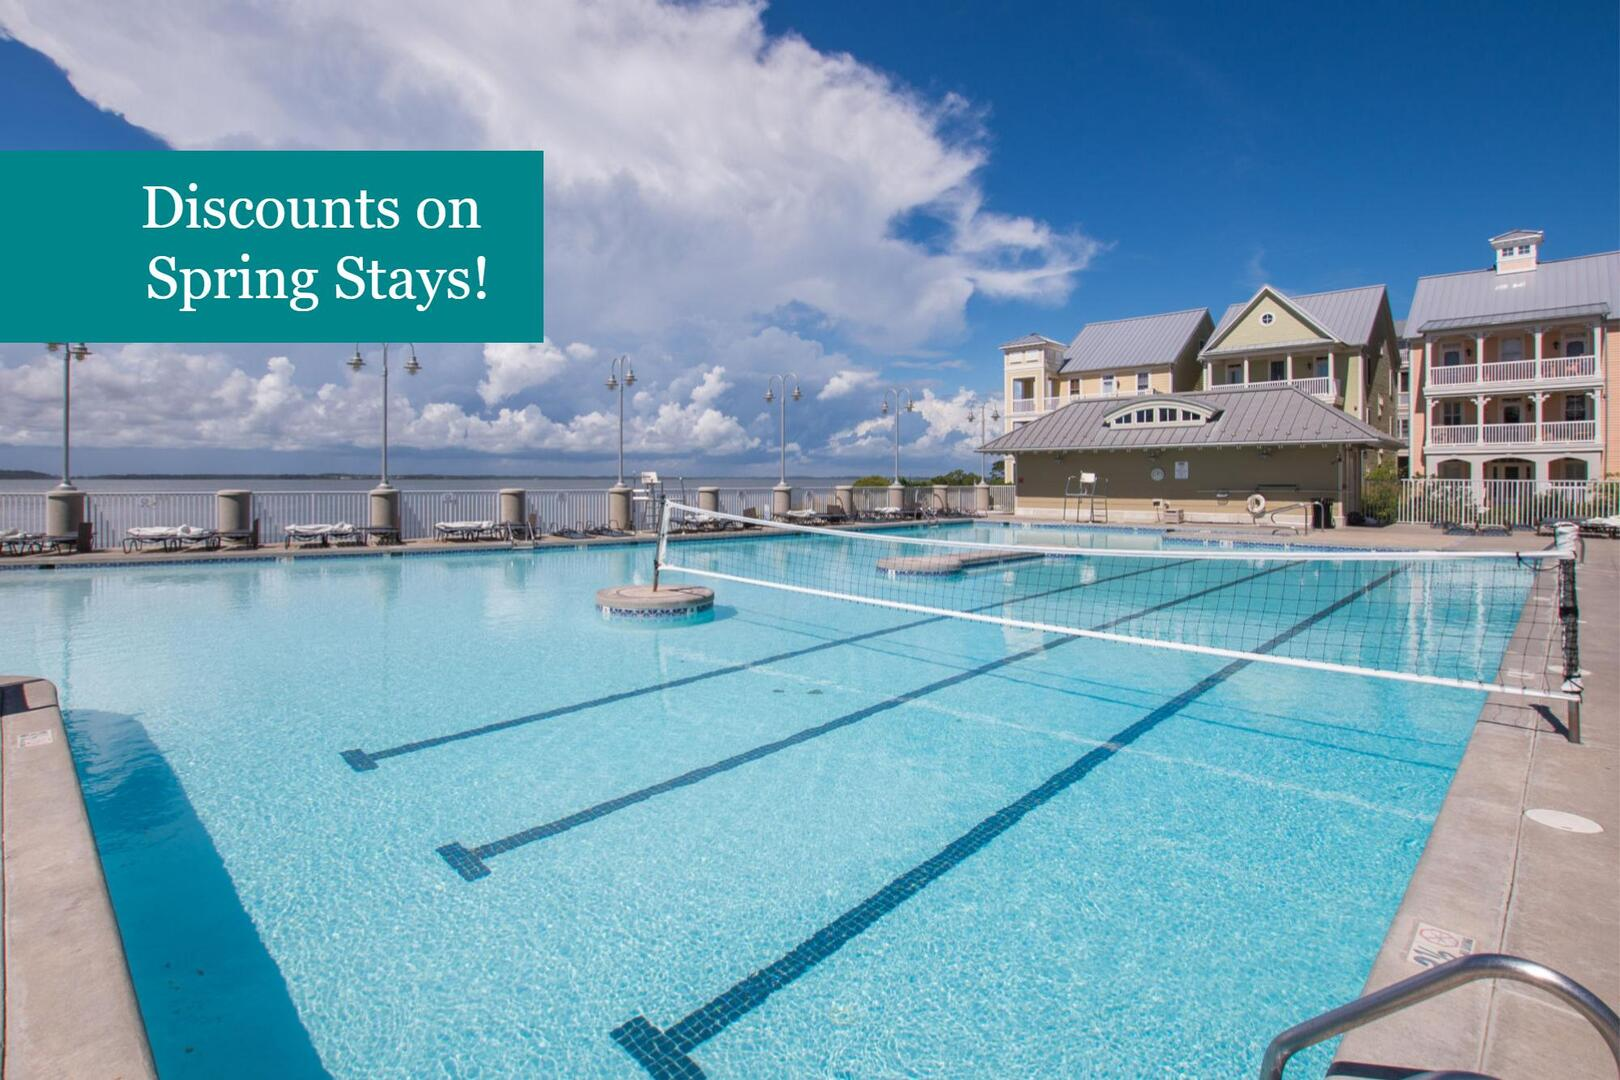 Rates Reduced on Select Spring Getaways